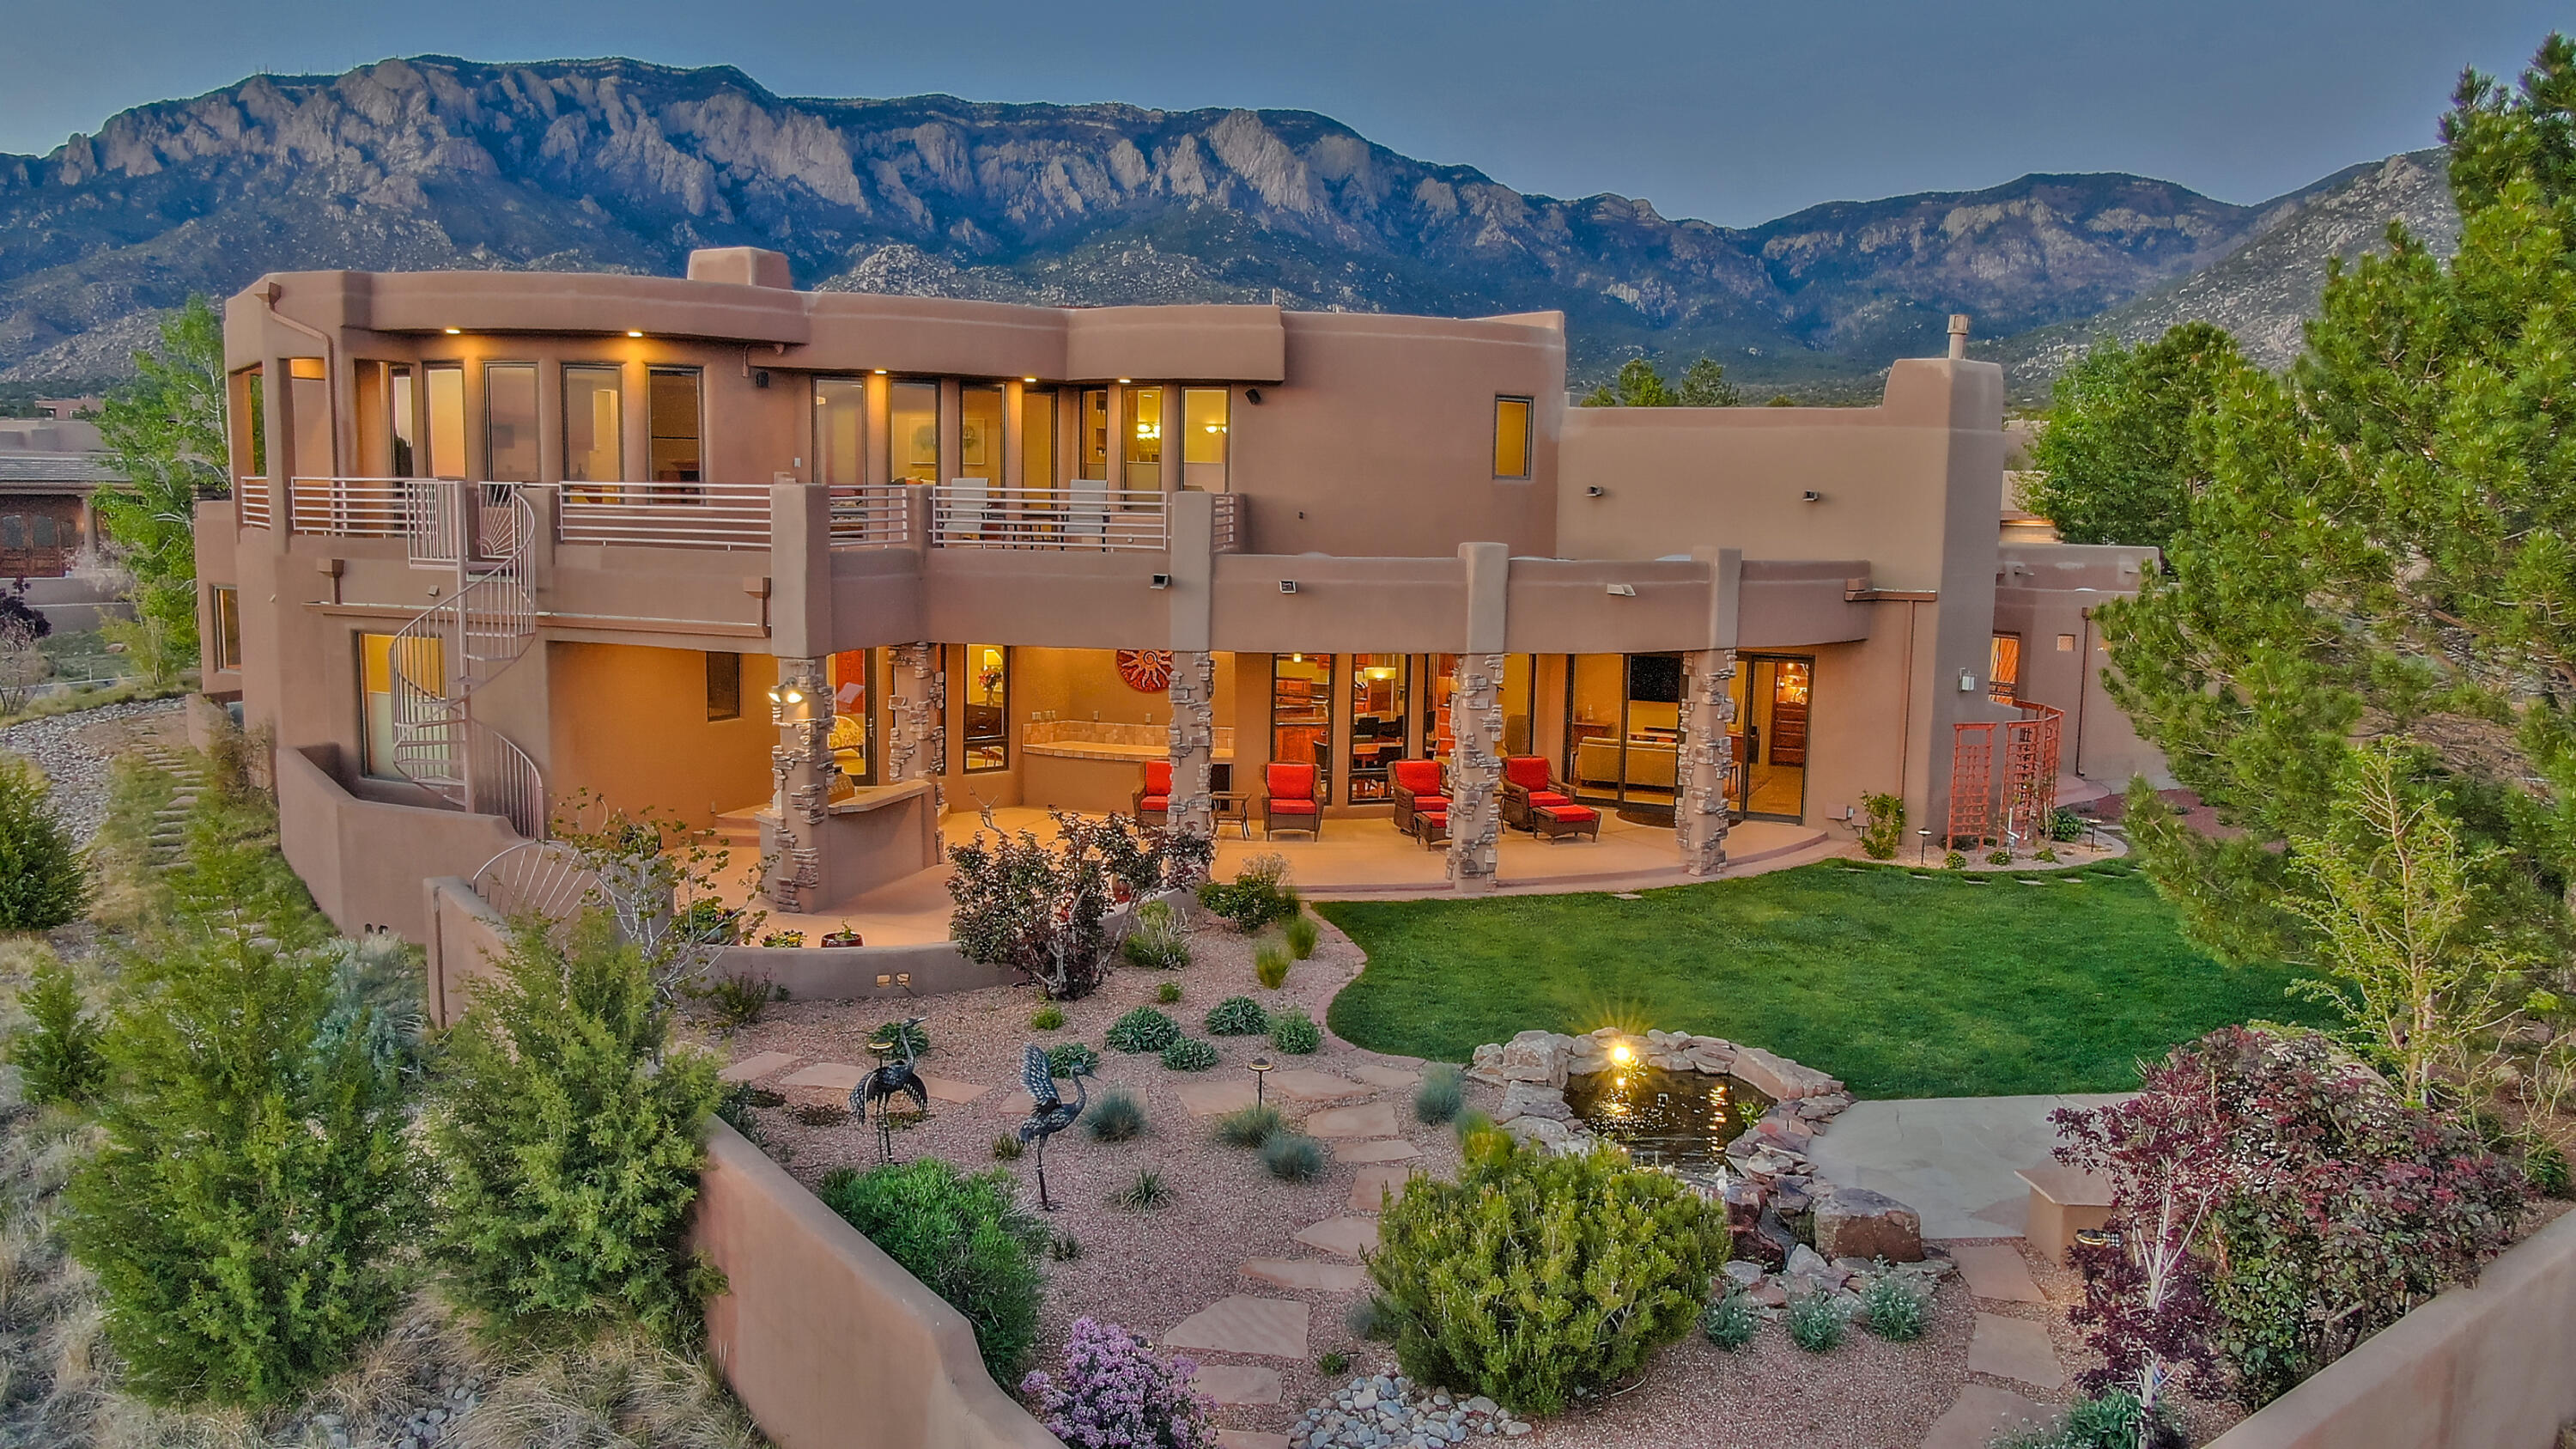 Breathtaking custom luxury home on a gorgeous, professionally landscaped 1 acre lot w/outstanding mountain & city views! Elegant architectural design by Eric Spurlock boasting an exceptional floorplan that will suit many lifestyles. 3 spacious rooms down including 1 ensuite w/jetted tub & patio access, expansive owners retreat up w/ luxurious bathroom & huge patio overlooking yard/city and a perfect office w/mountain views! Amenities galore; abundant in natural light, radiant heat, refrigerated air, extensive security & home automation capabilities, Chef's kitchen, greatroom w/2 dual temp wine coolers, superior outdoor living spaces, soothing fishpond, 2 rock fountains, aspens, pine, roses, outdoor banco, cool grass & room for a pool! It's a High Desert gem  & could be your ABQ Dream Home!